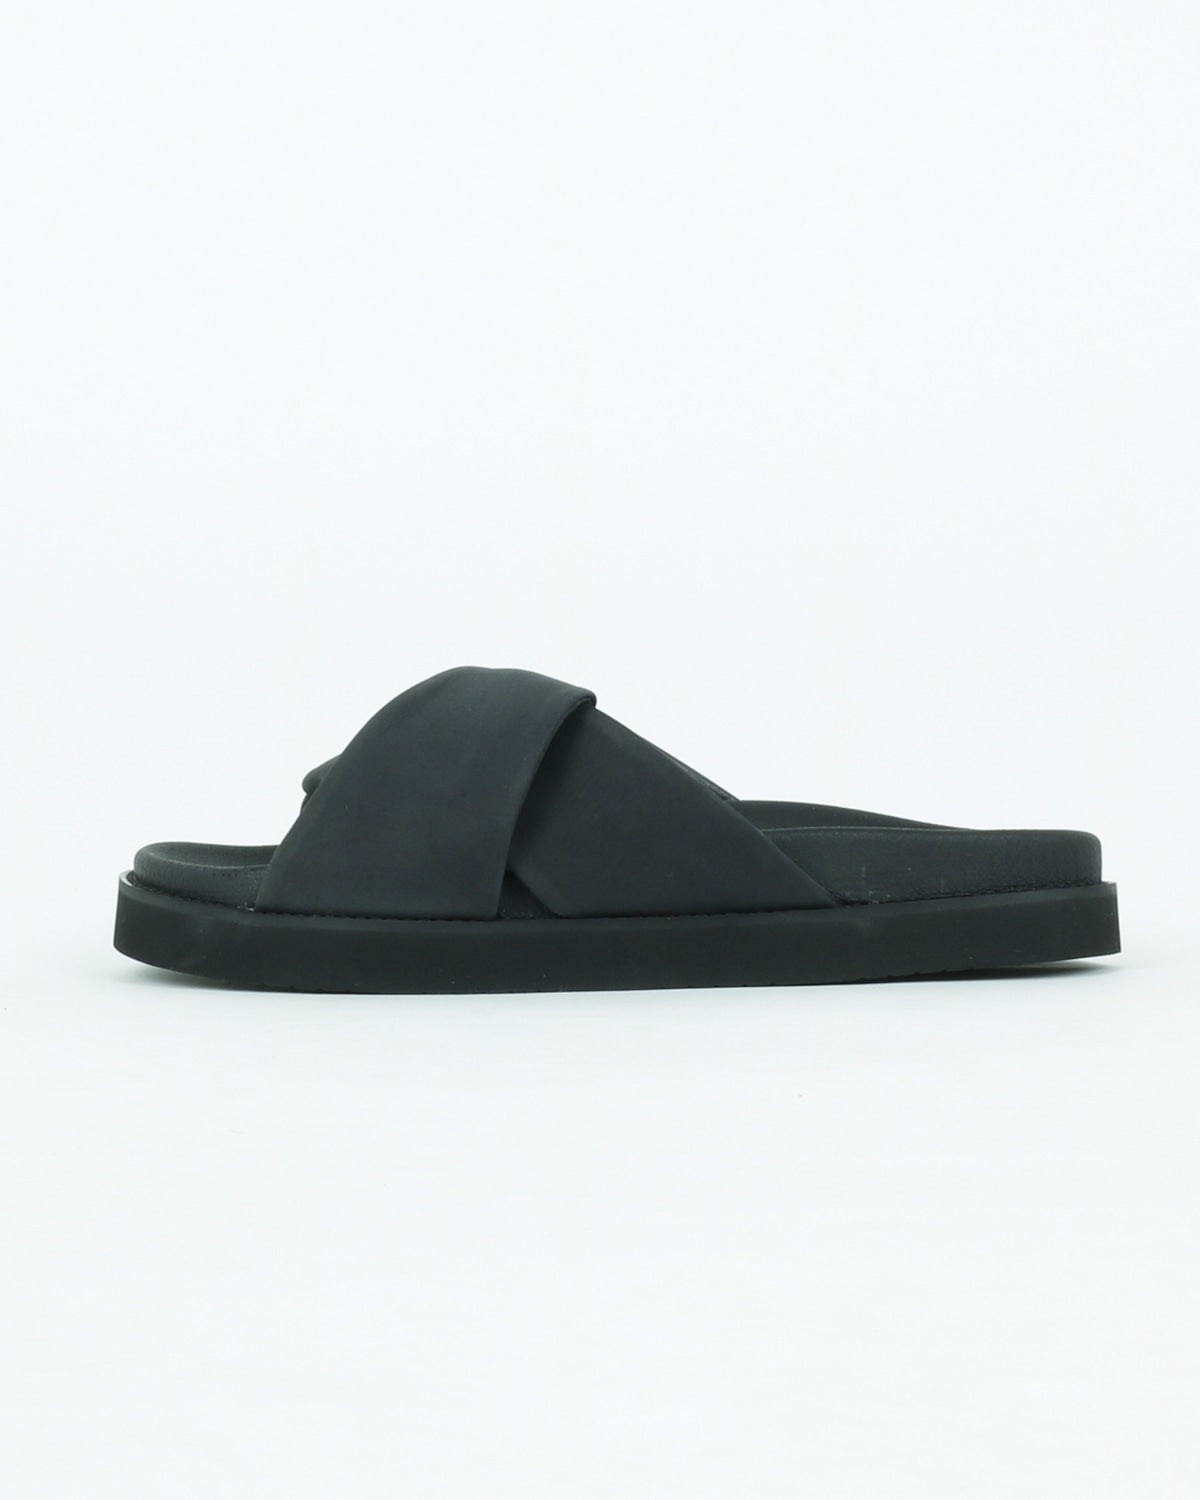 garment project_yodoa sandals_black nubuck_2_3